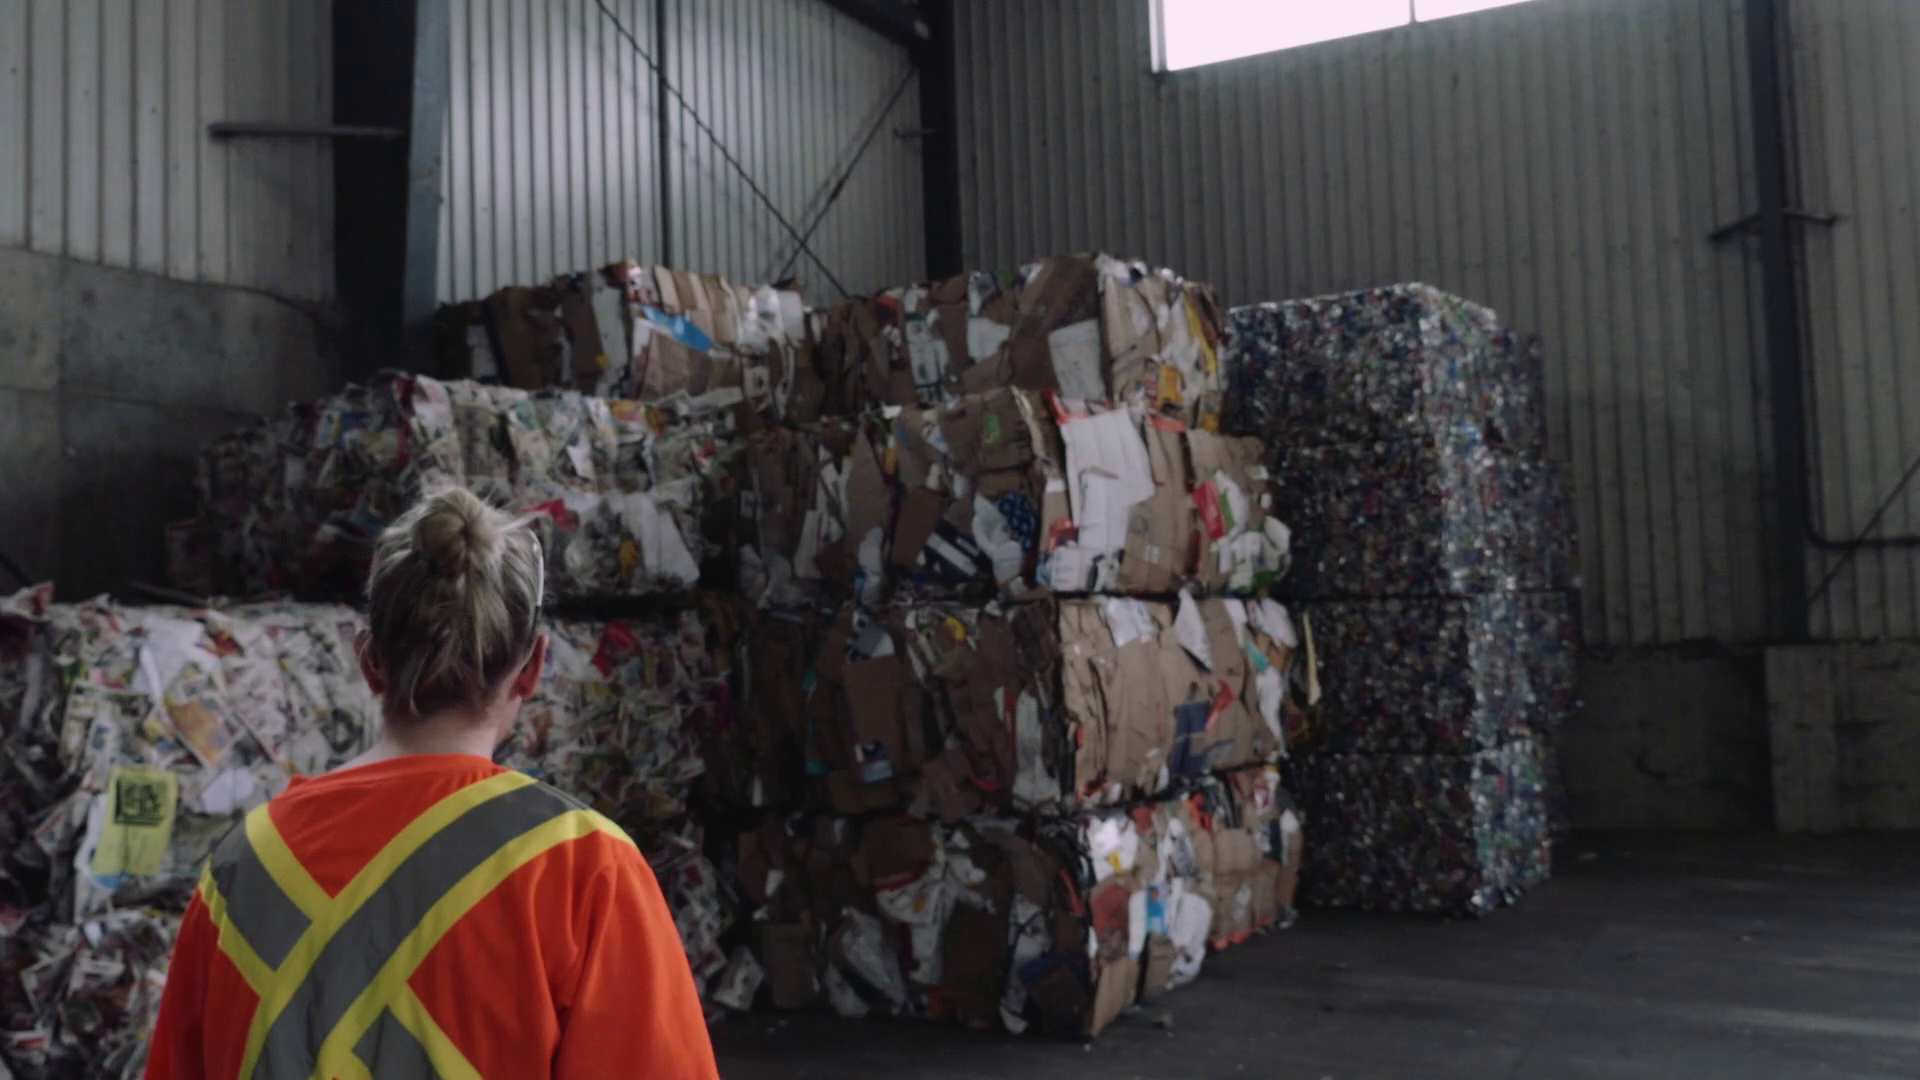 A person giving a tour of the recycling facility